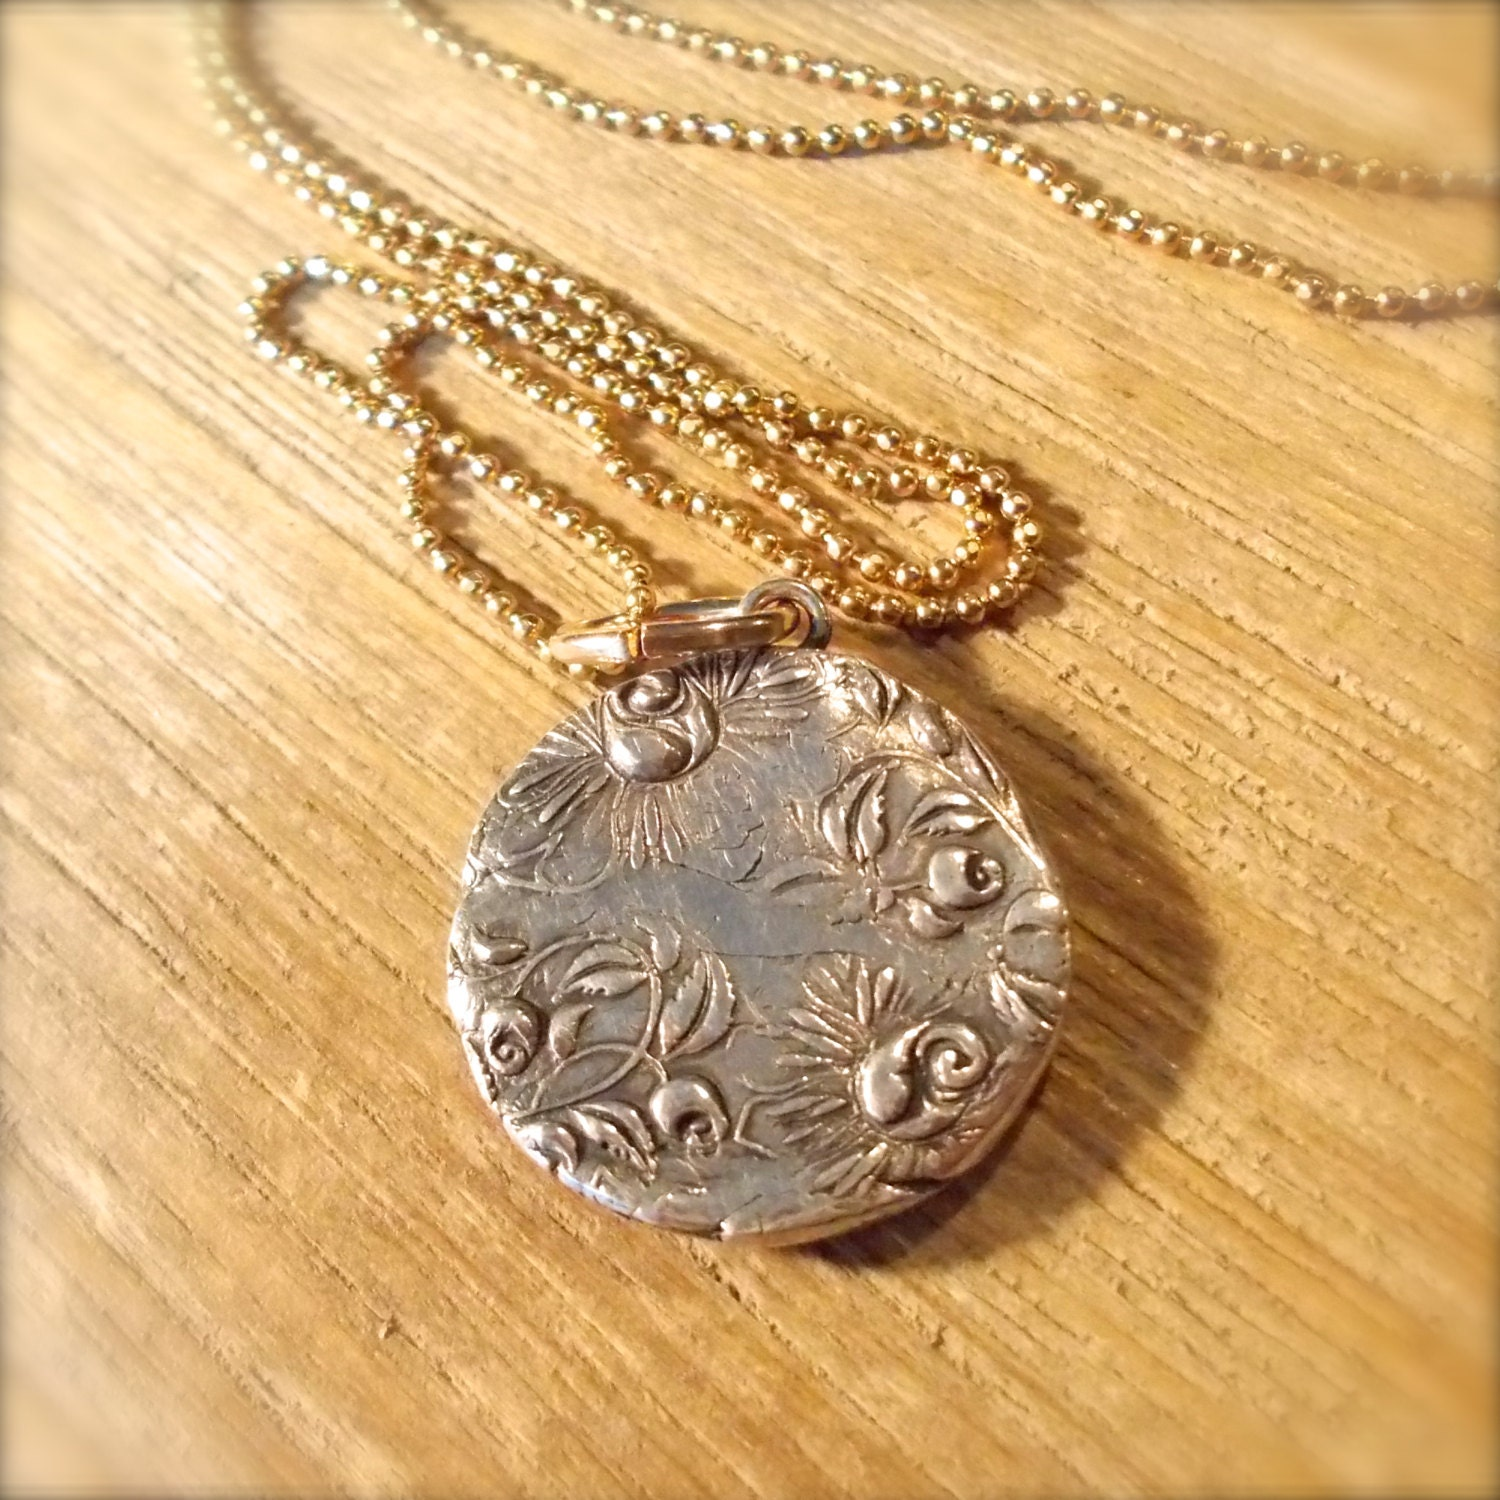 The back of the silver pendant prominently features roses, which in magic signify secrecy and silence.